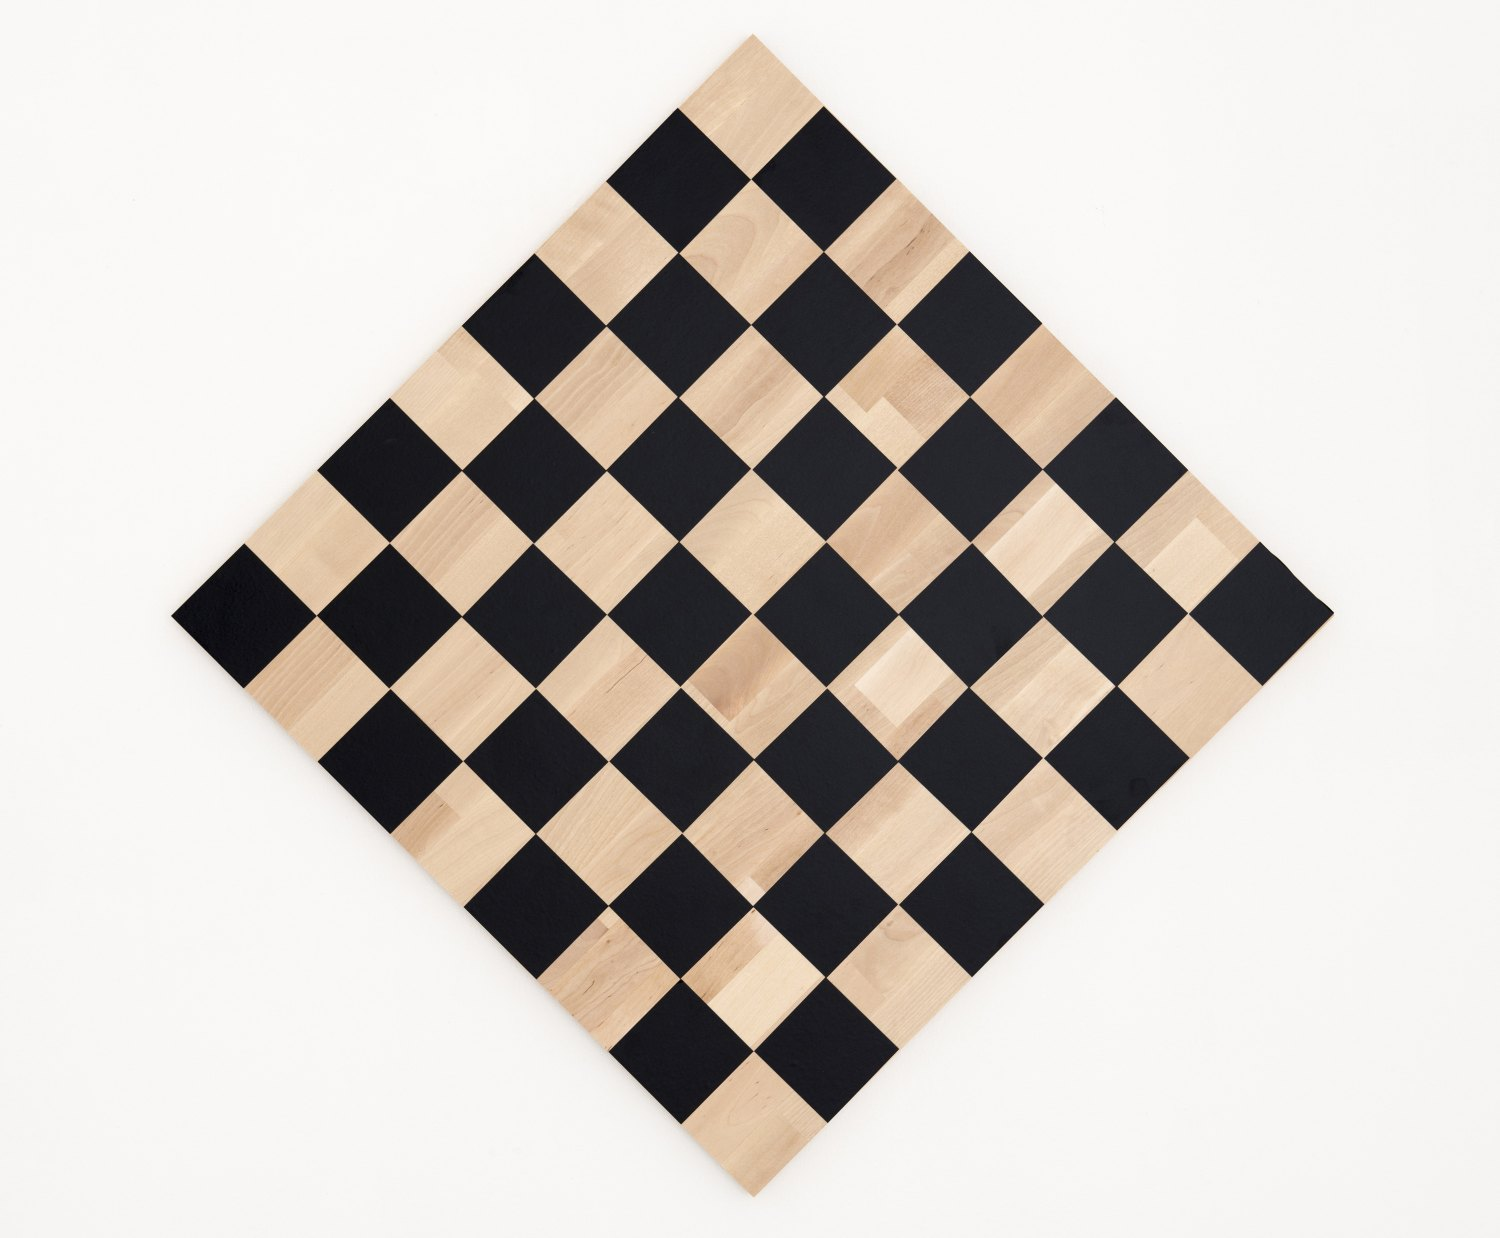 Karl Holmqvist Untitled (Checkerboard Painting Black), 2013 Vinyl on wood, 60 × 60 cm